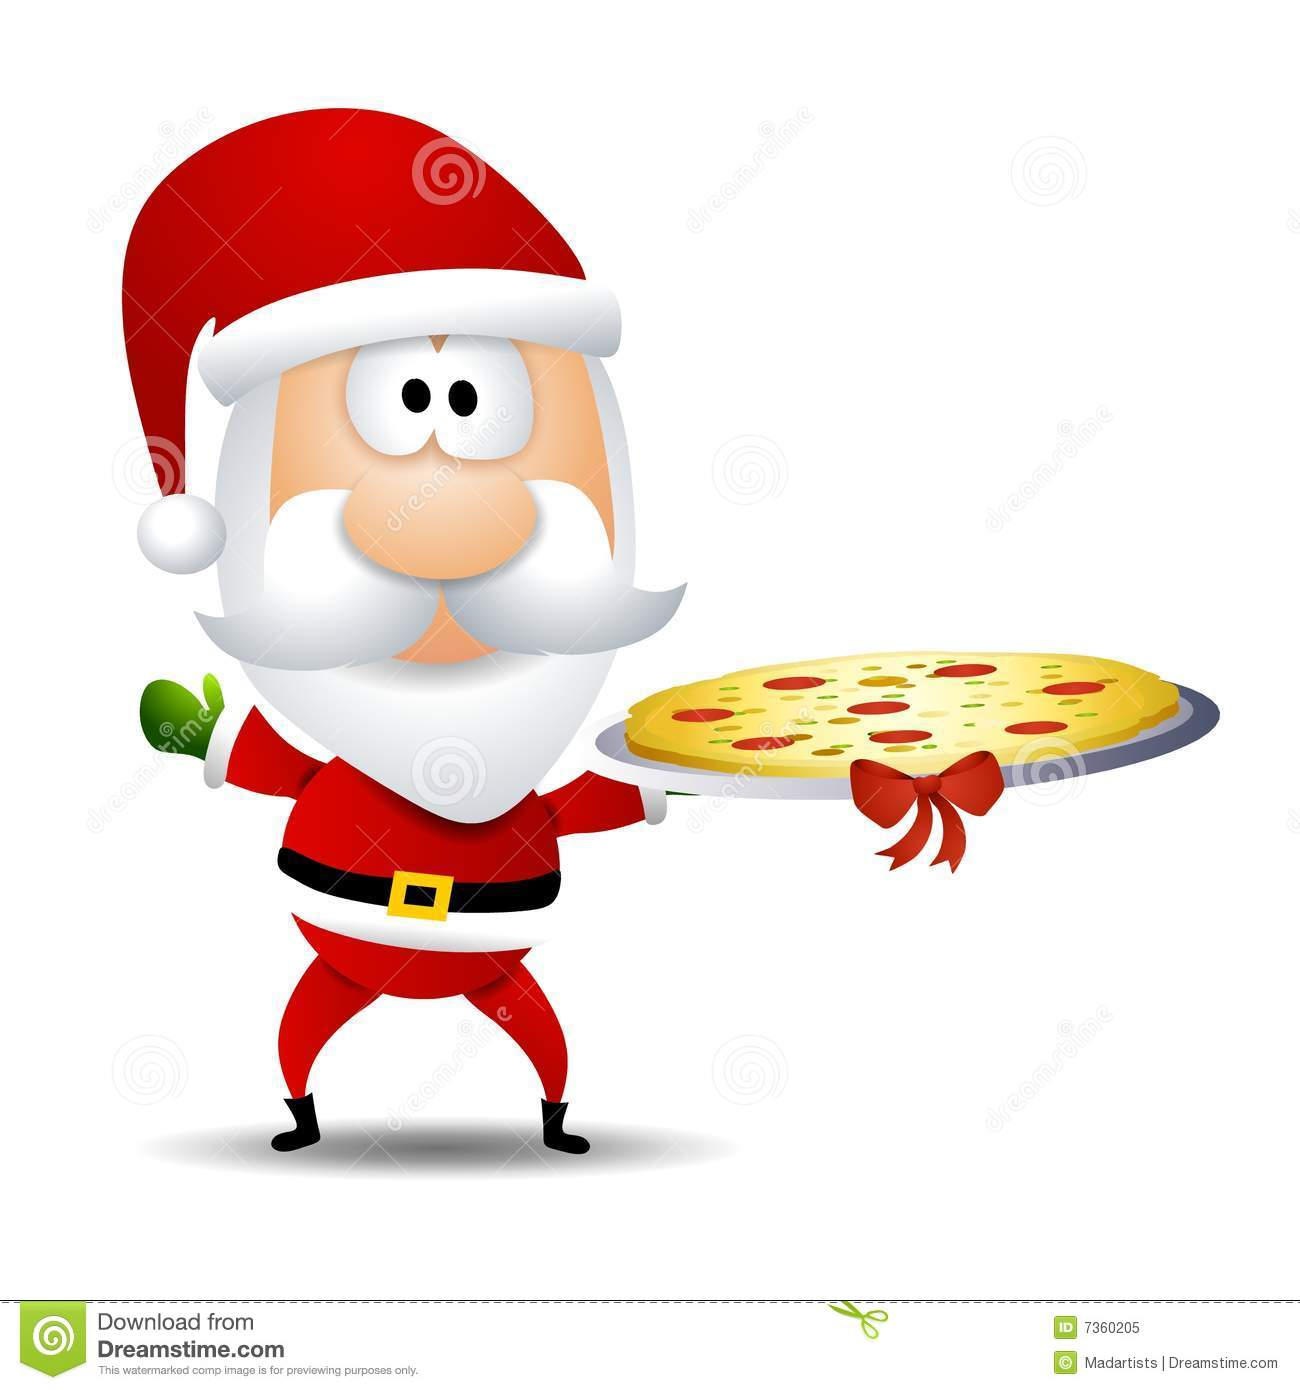 Santa Claus Pizza Platter stock illustration. Illustration of image.